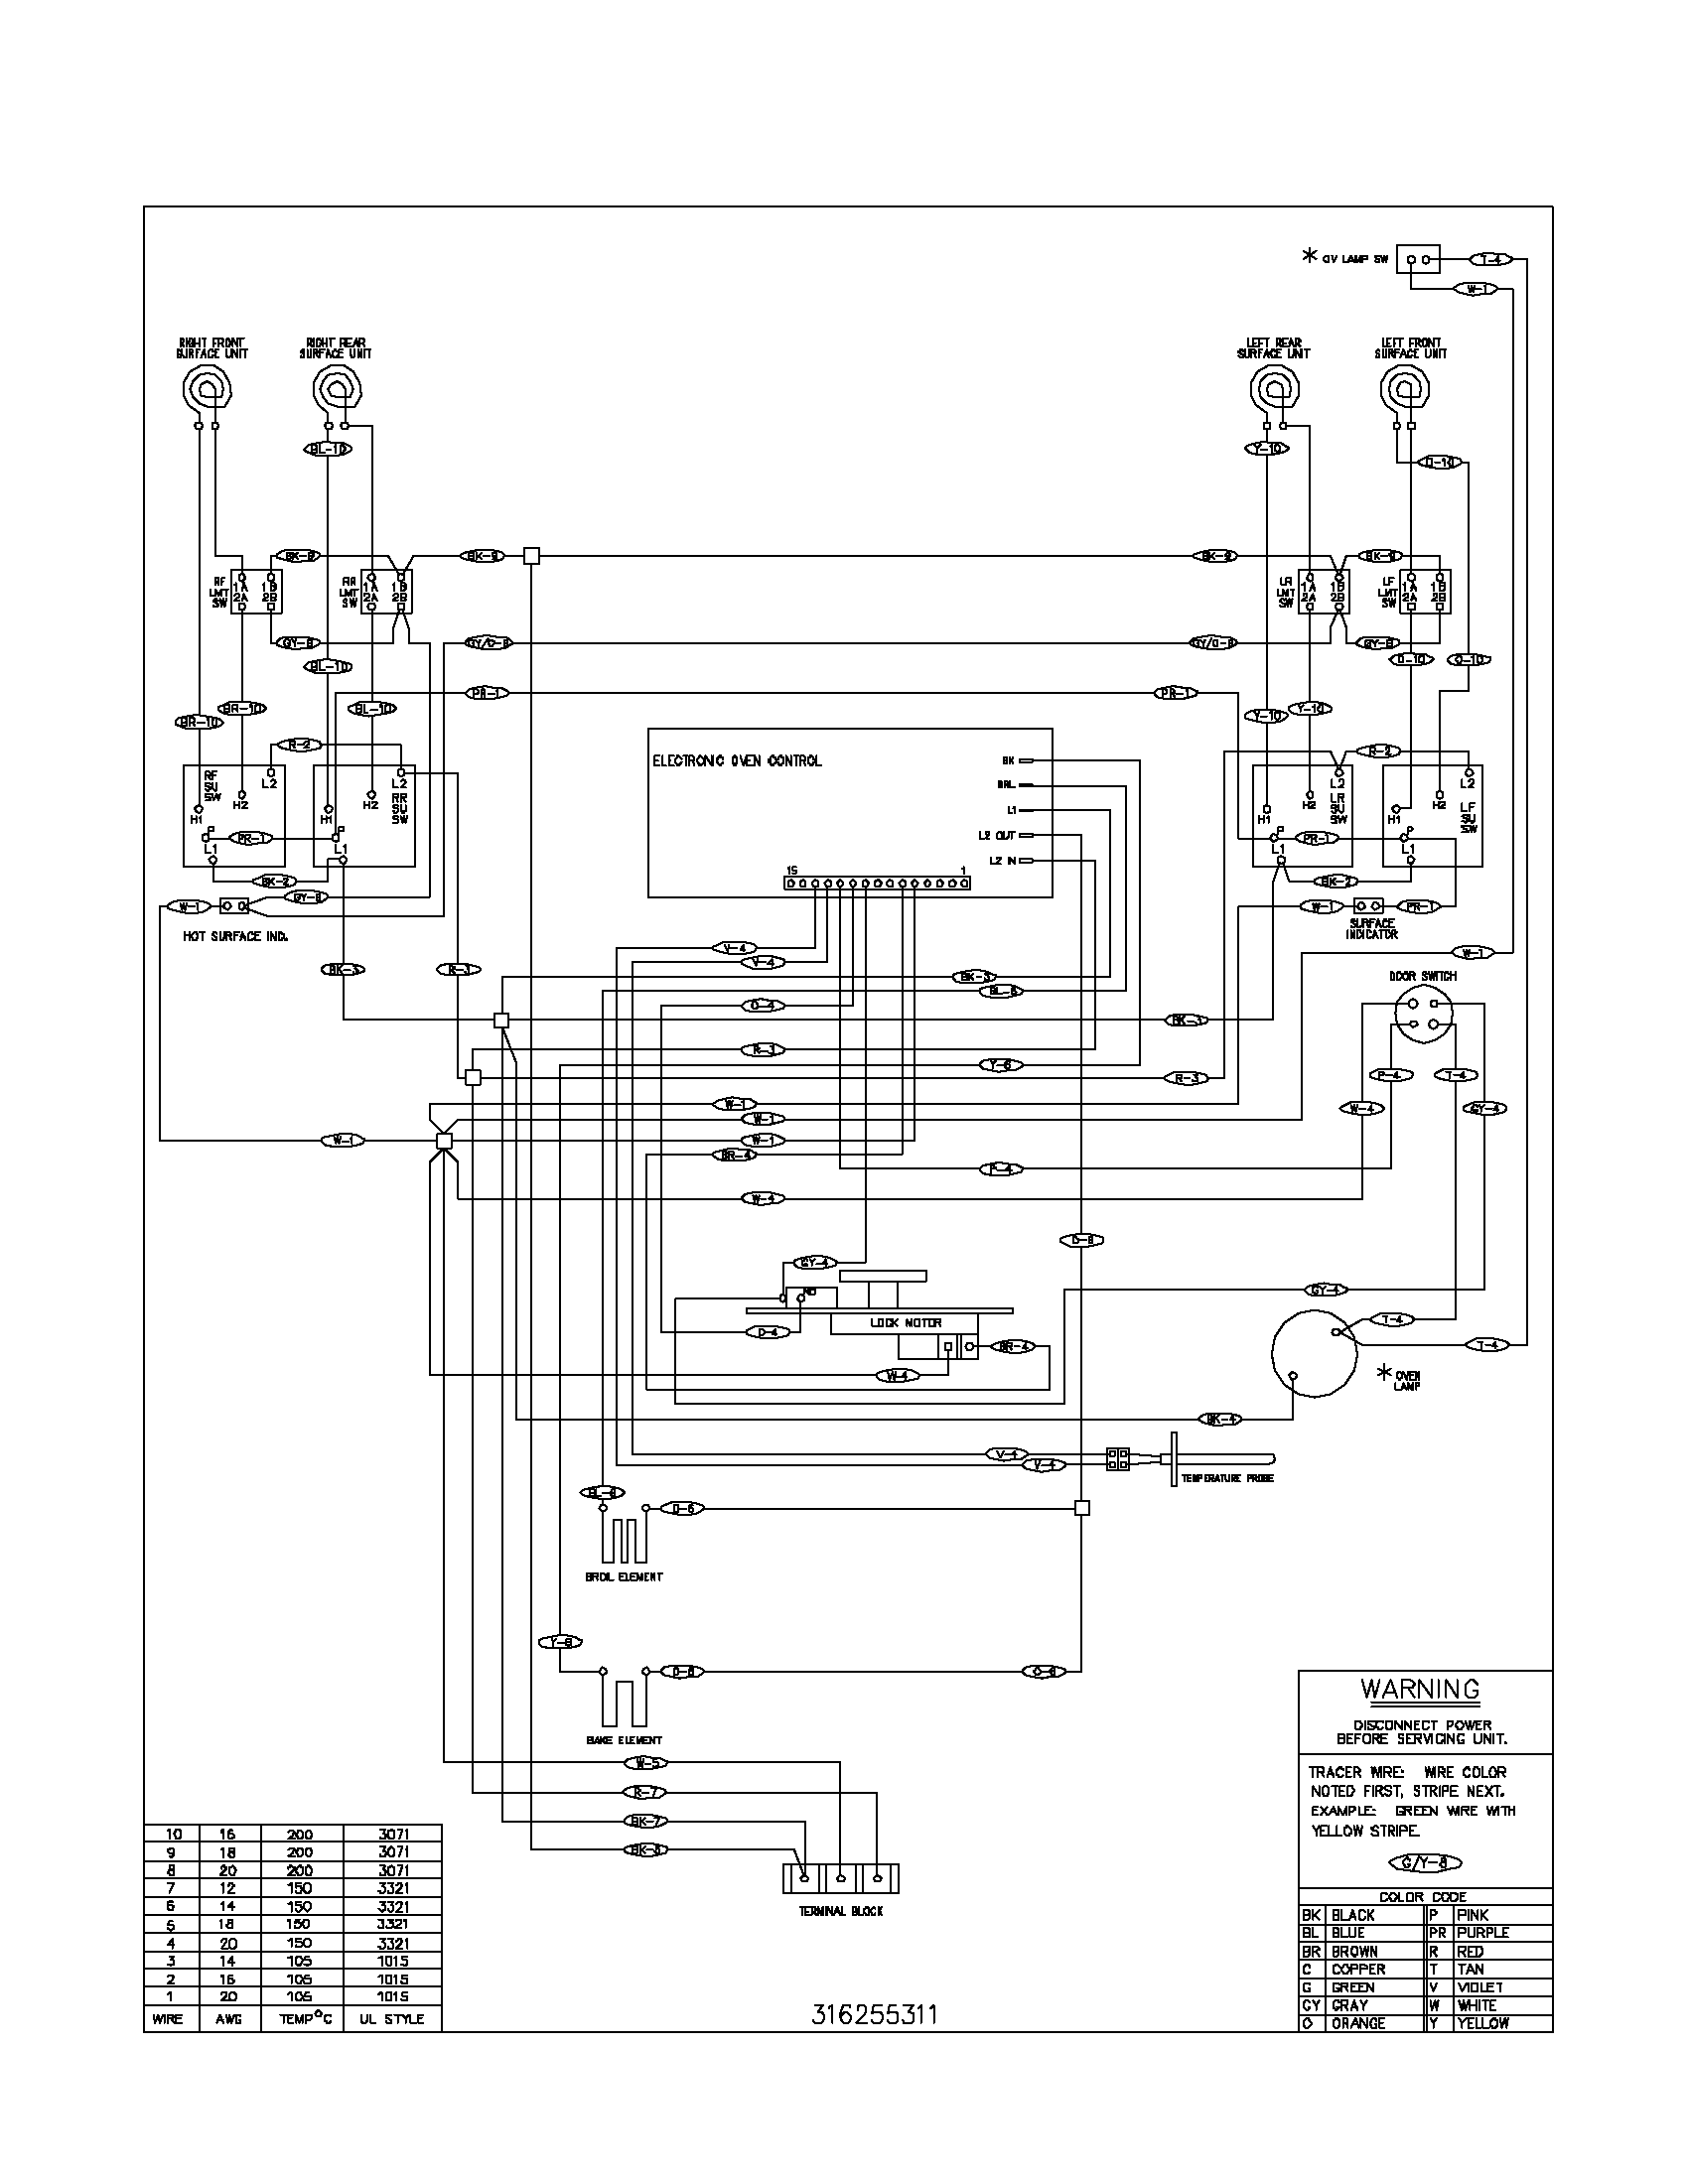 wiring diagram parts frigidaire stove wiring diagram frigidaire washer wiring diagram electric hot plate wiring diagram at suagrazia.org